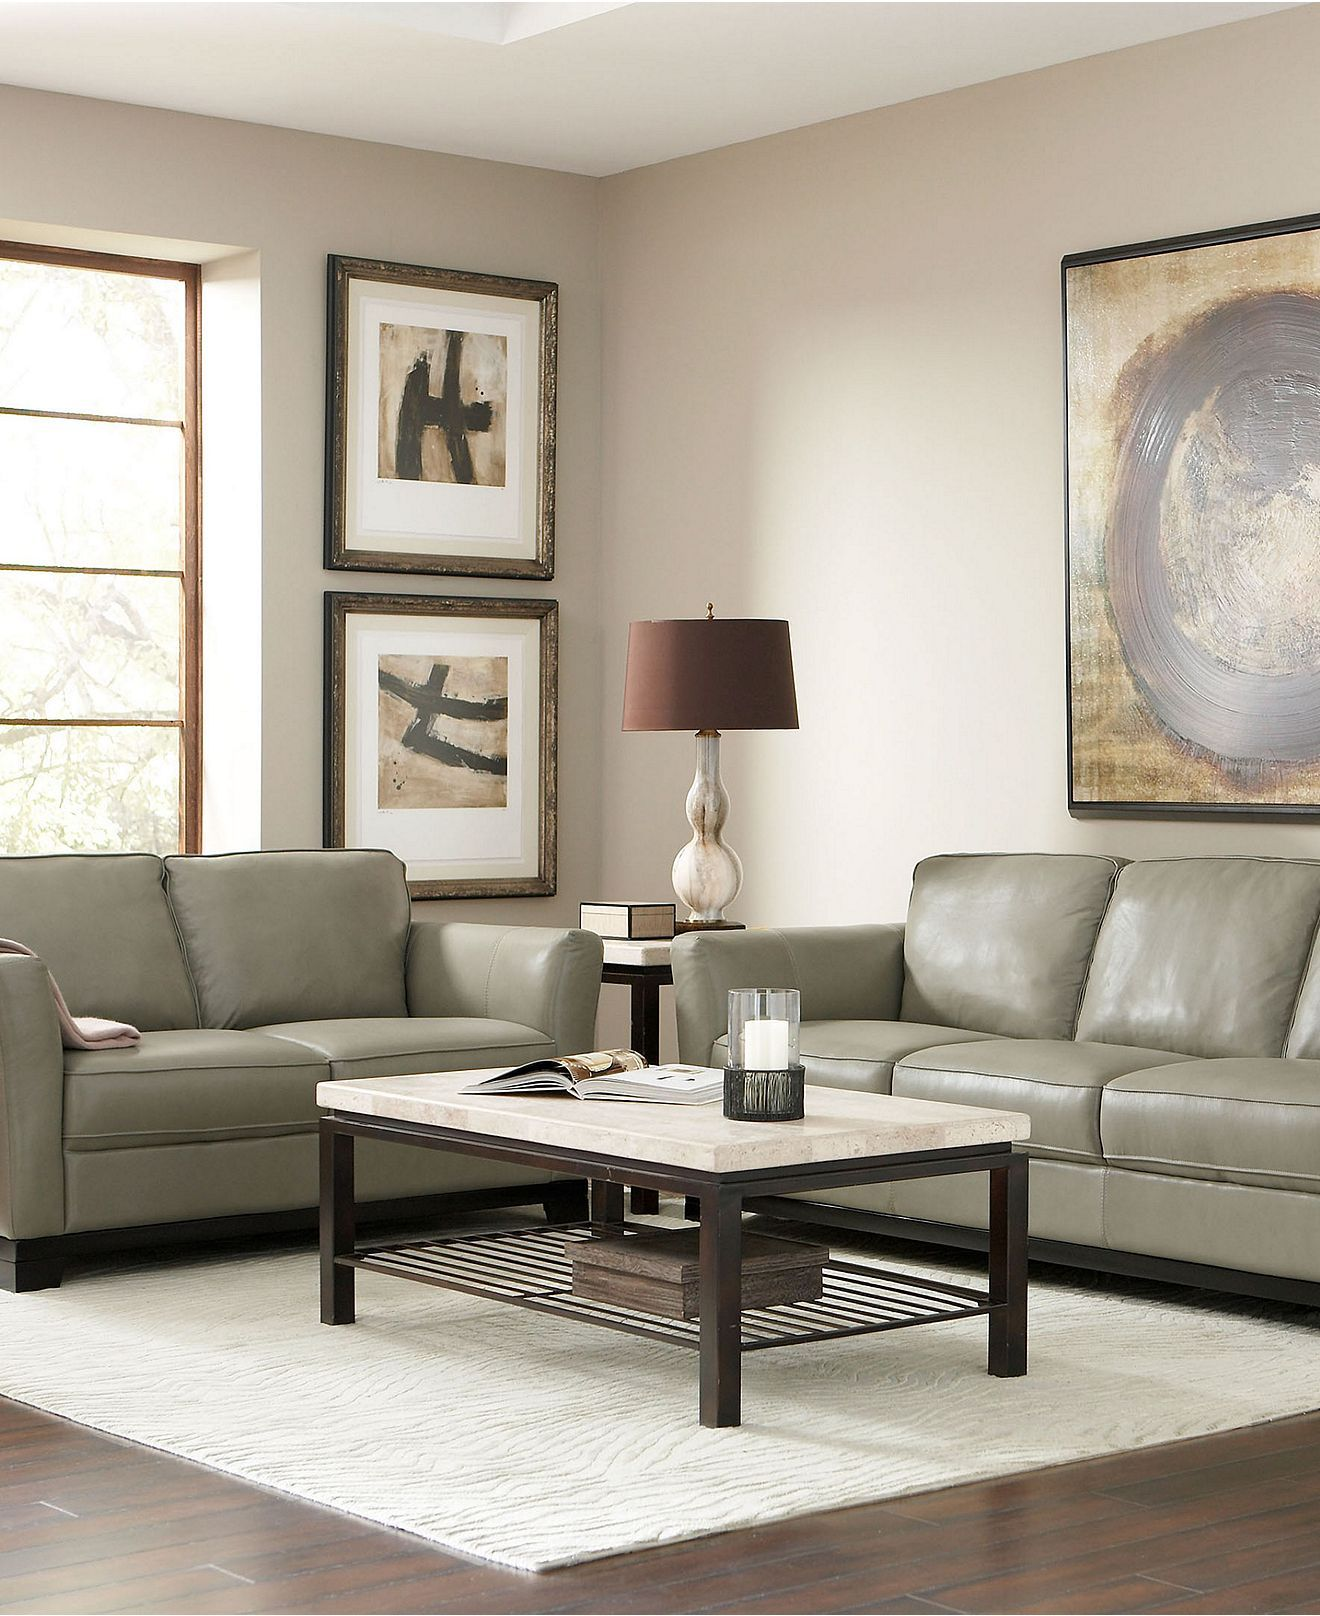 Turin Leather Living Room Furniture Sets & Pieces